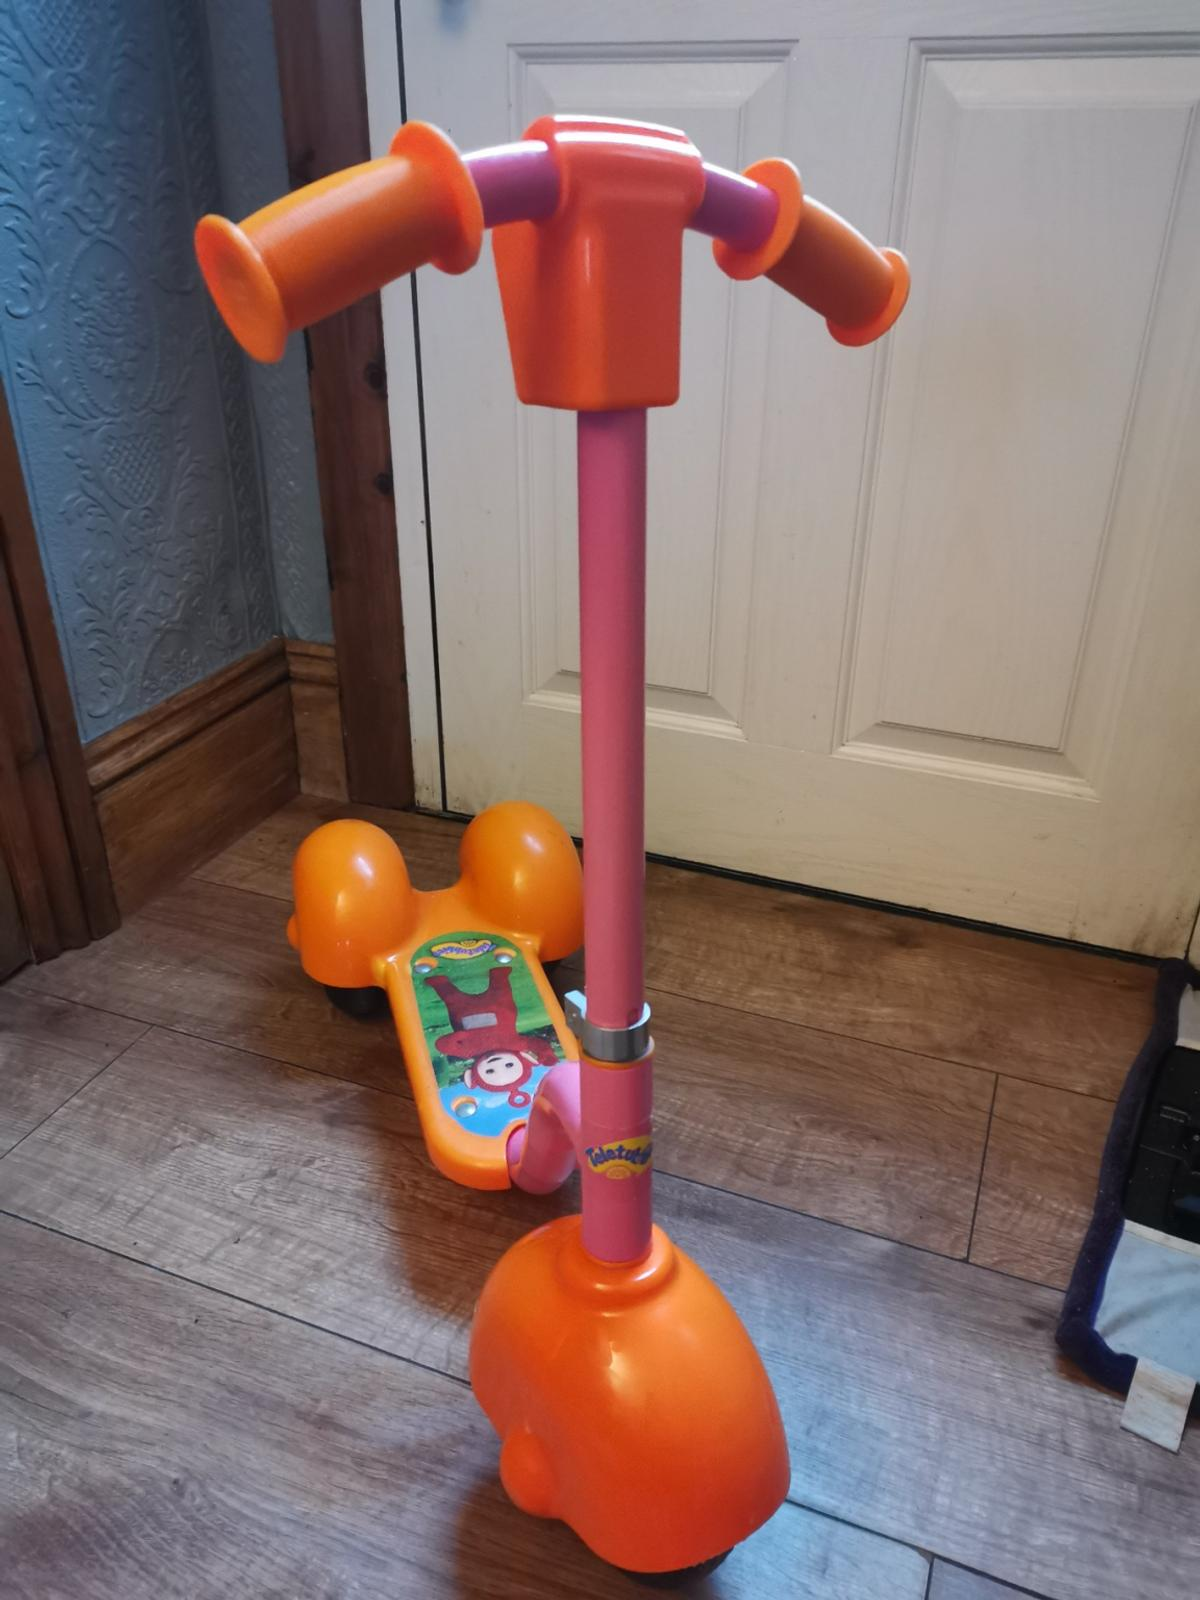 Plays music and sounds from the TV show There's a split in the front plastic wheel but could be glued? Viewing before buy is welcome